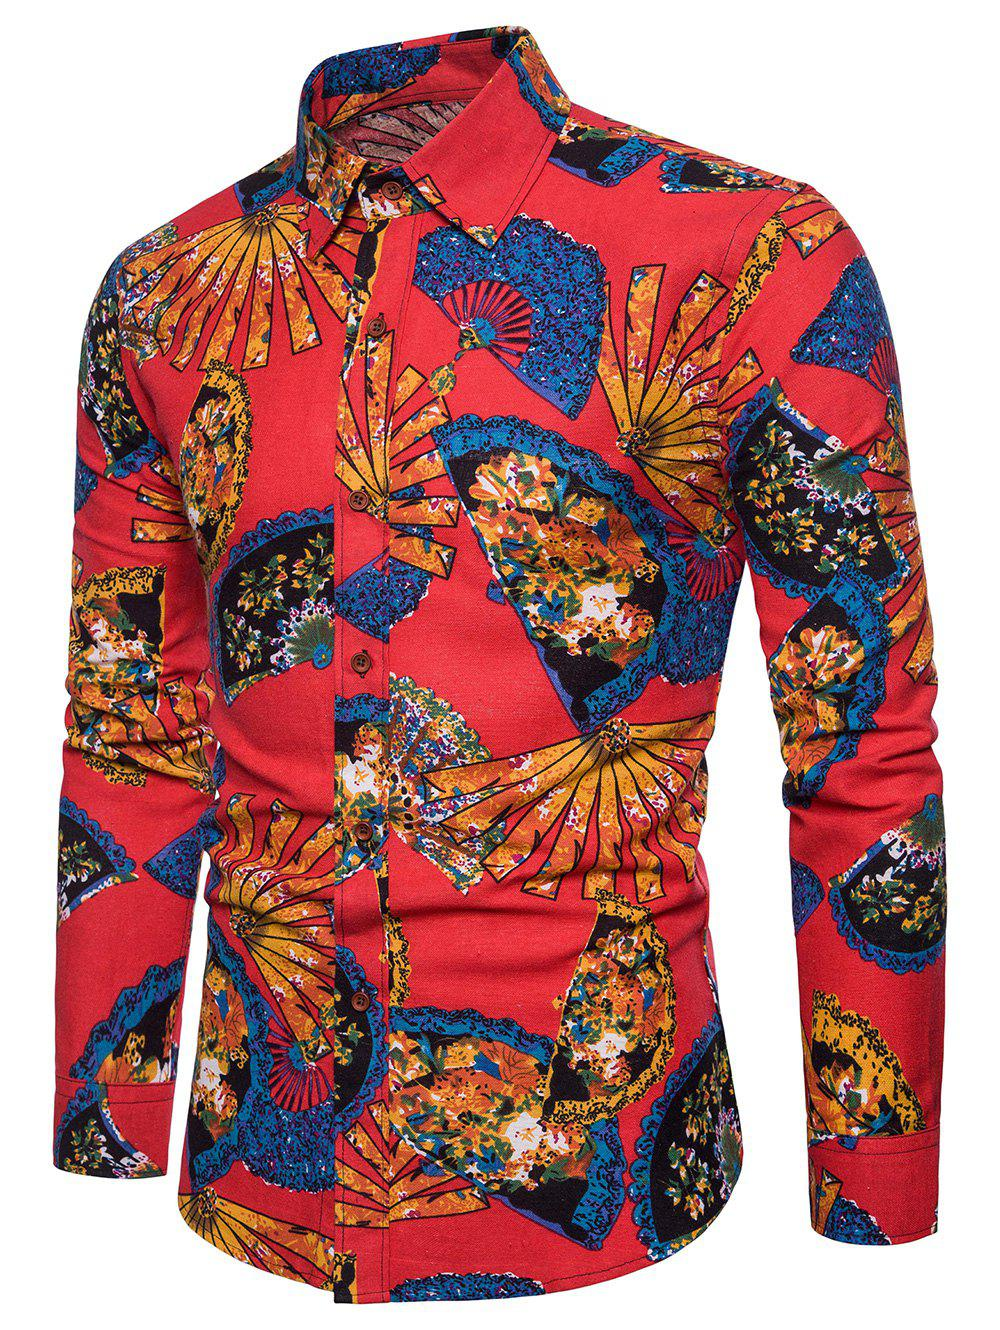 Trendy Fanshaped Printed Button Up Shirt